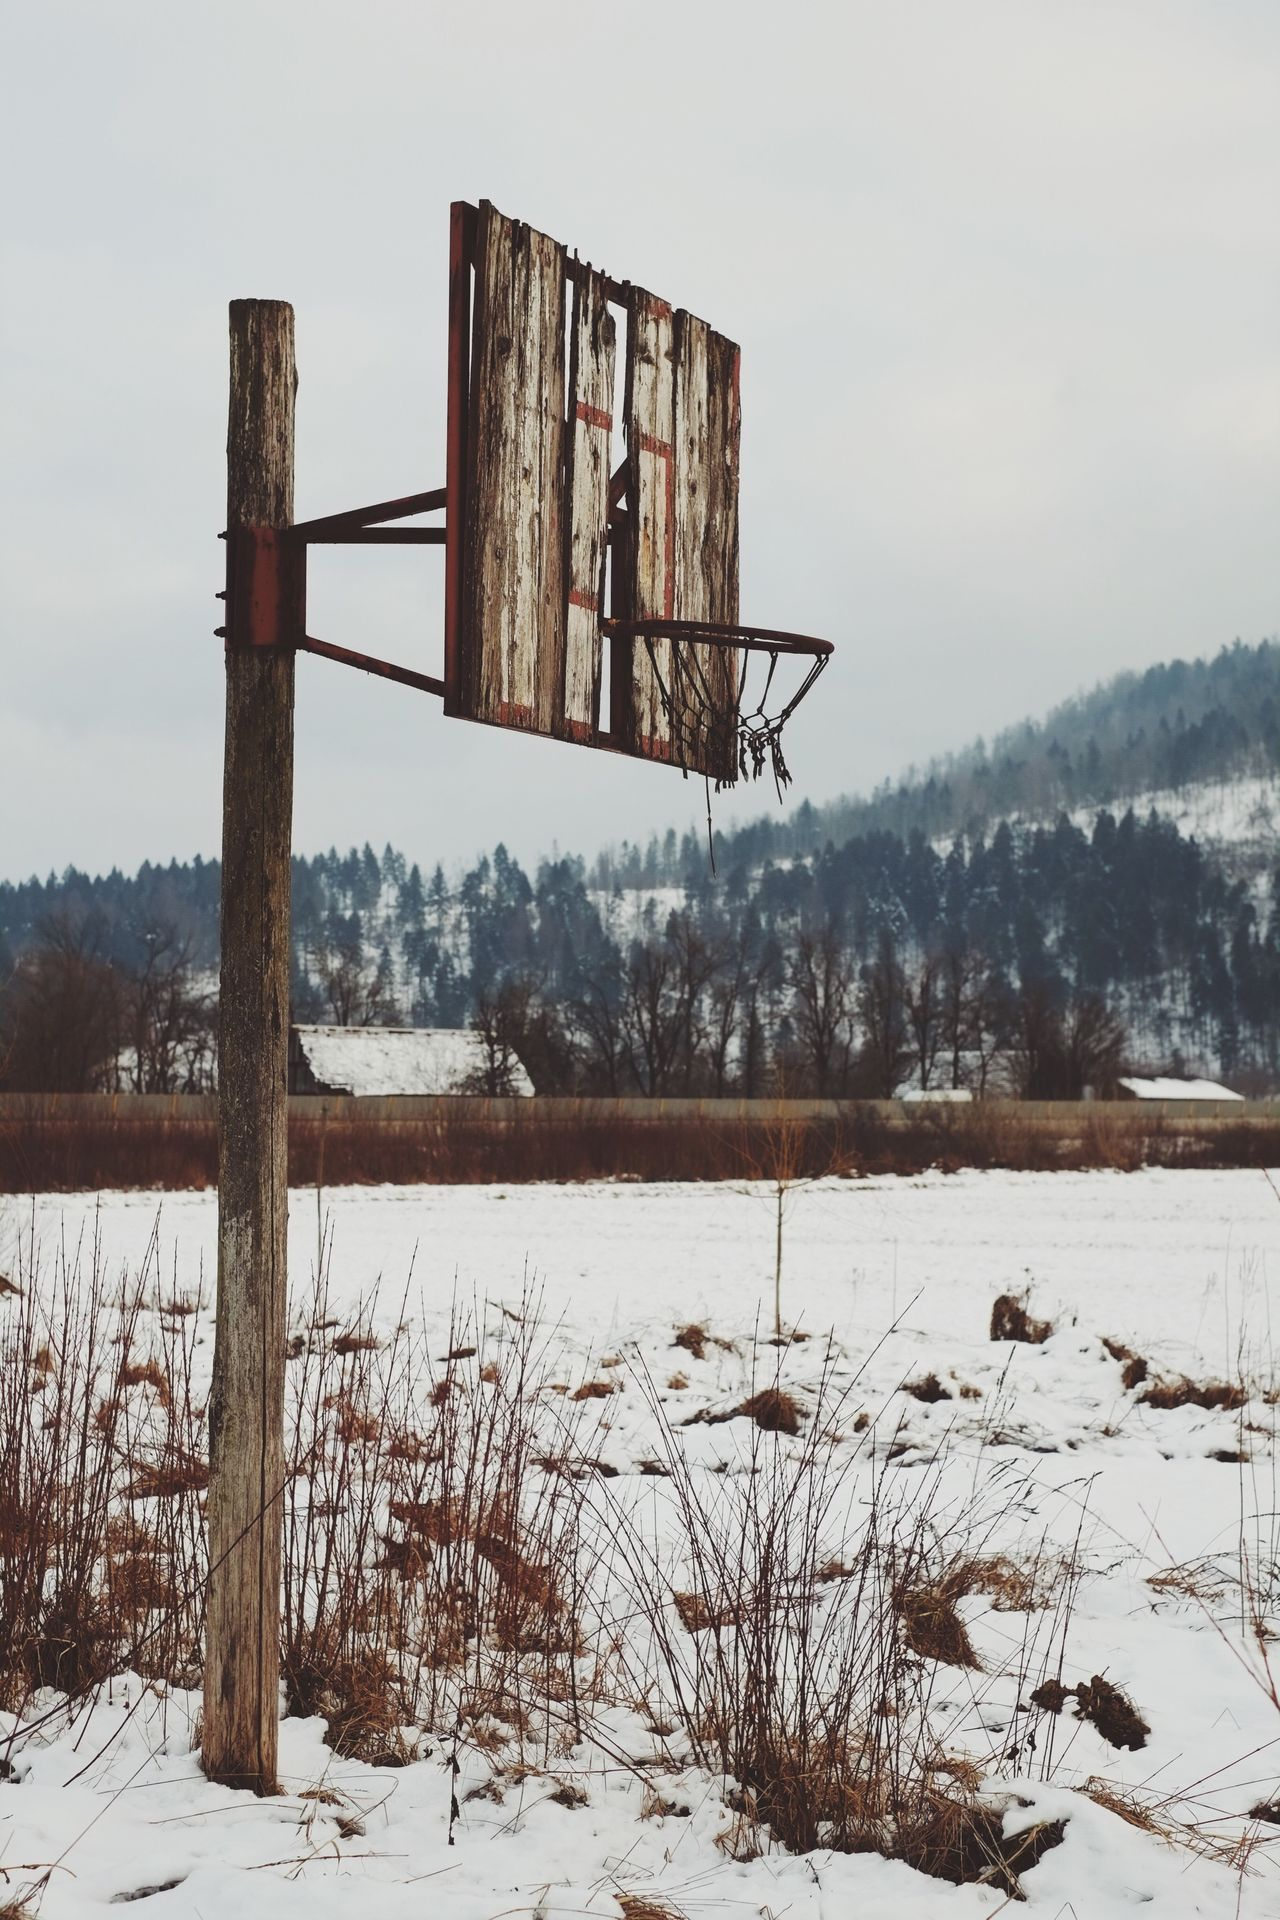 Off season basket court. Winter Cold Temperature Snow Nature Weather Field Scenics Bare Tree No People Landscape Tranquil Scene Day Outdoors Sky Beauty In Nature Tranquility Tree Basketball Basketball Court Basketball Hoop Off Season